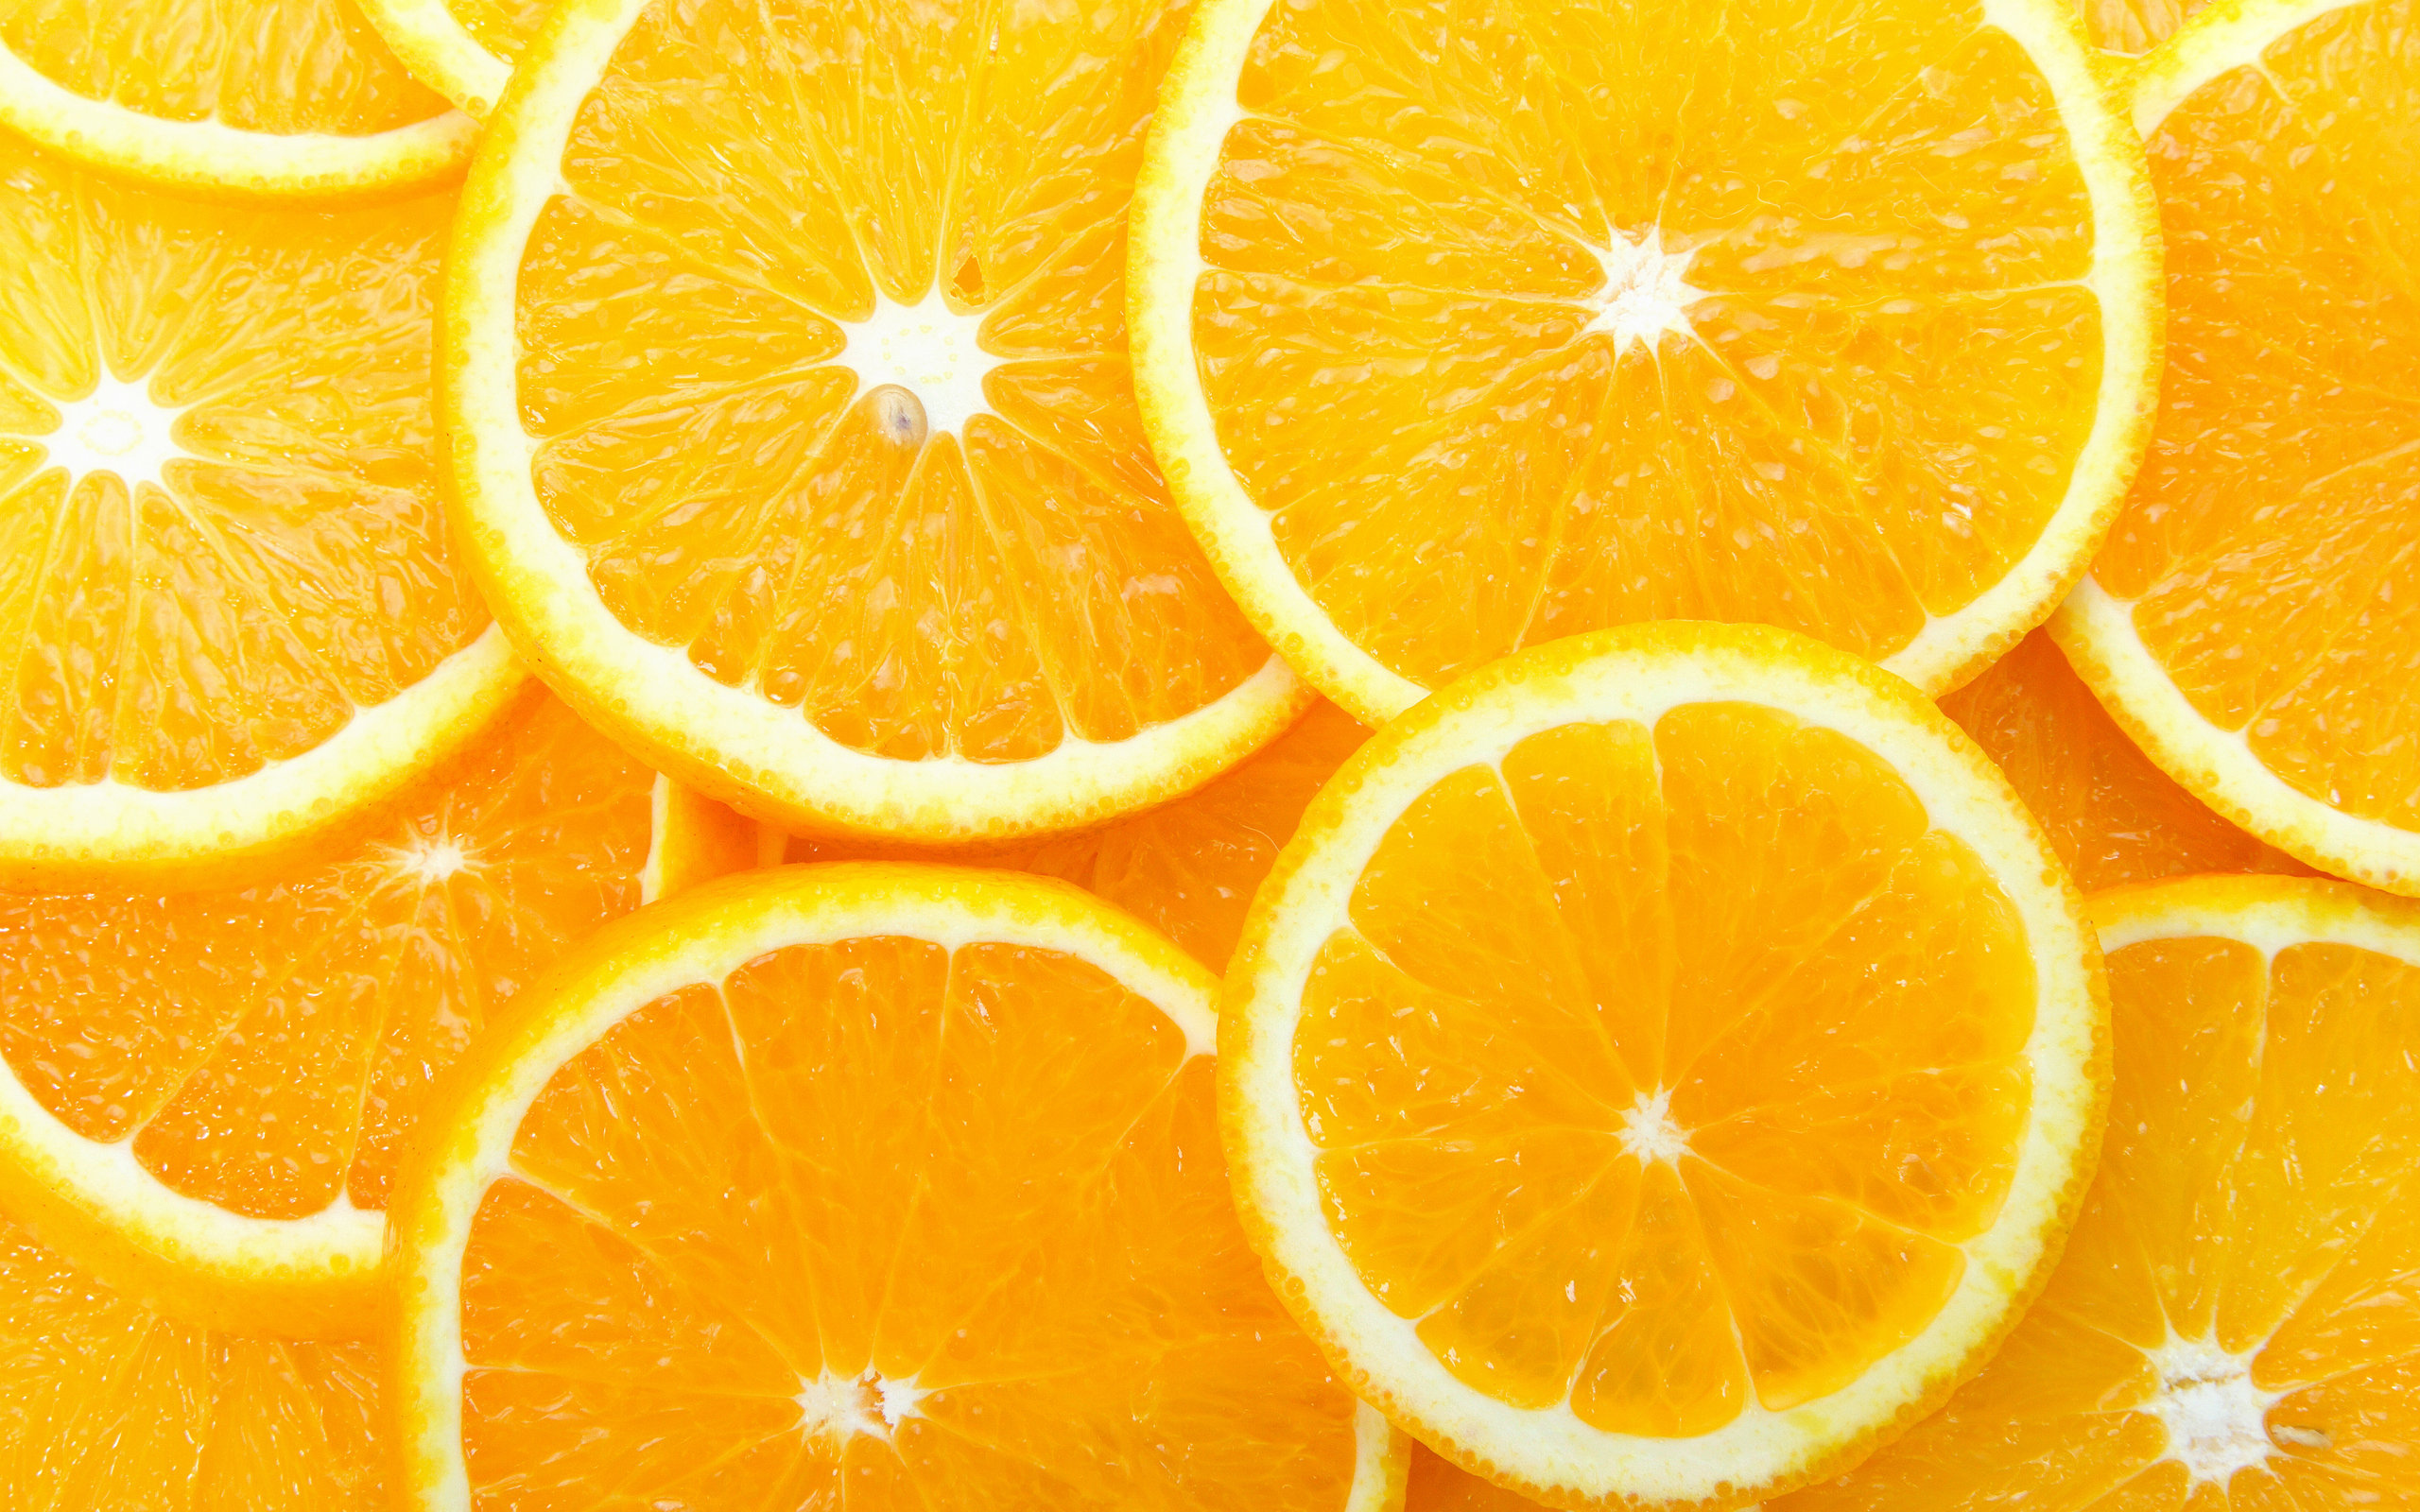 lemons-26125-26810-hd-wallpapers